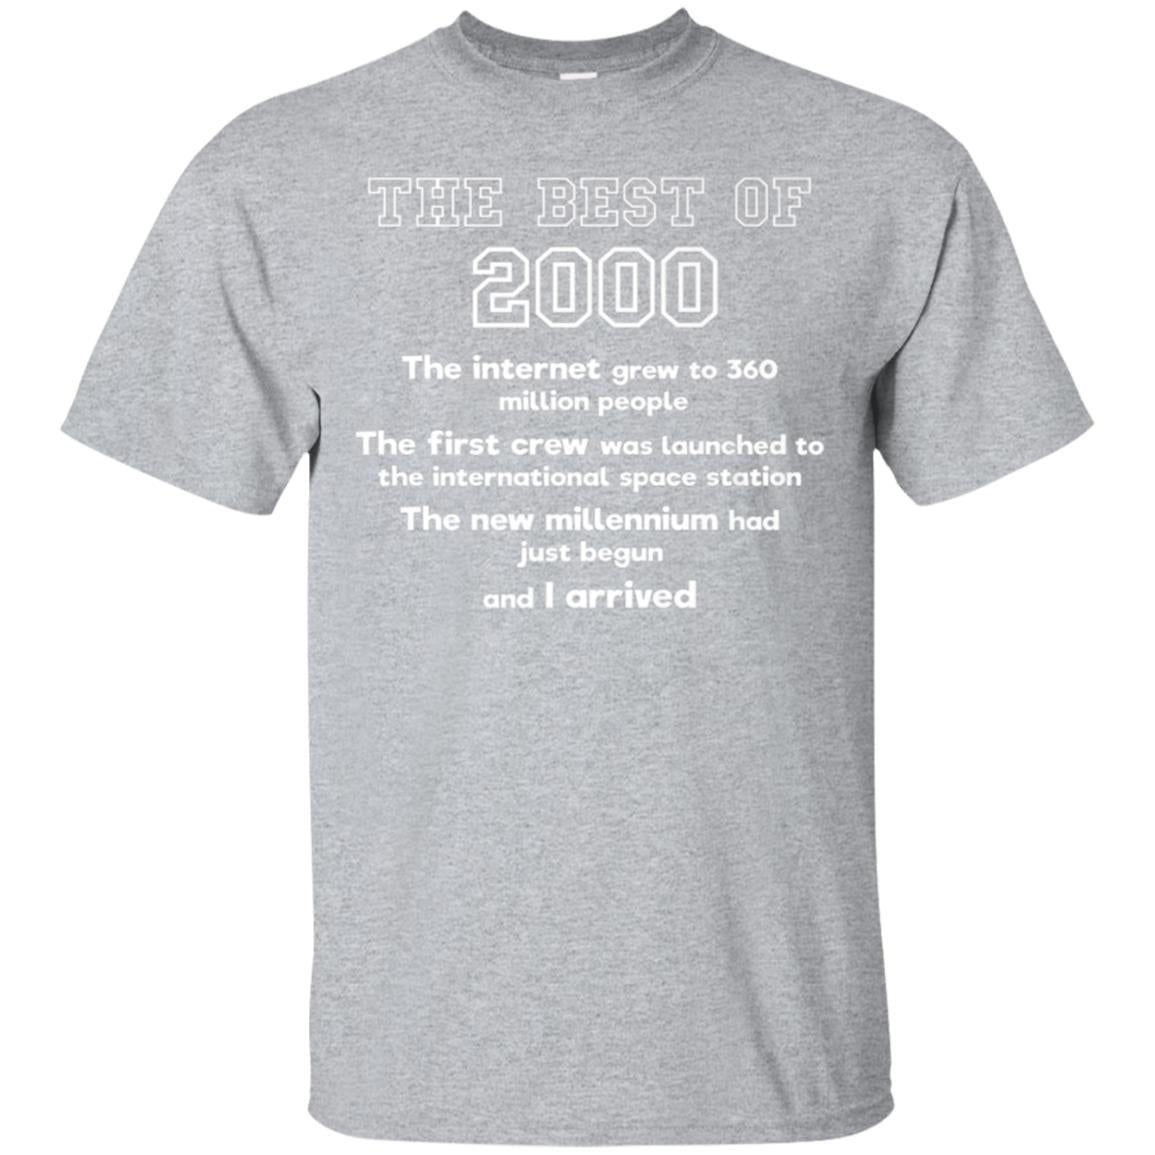 Awesome 2000 18th Birthday T Shirt Gift For 18 Year Old Boys Girls